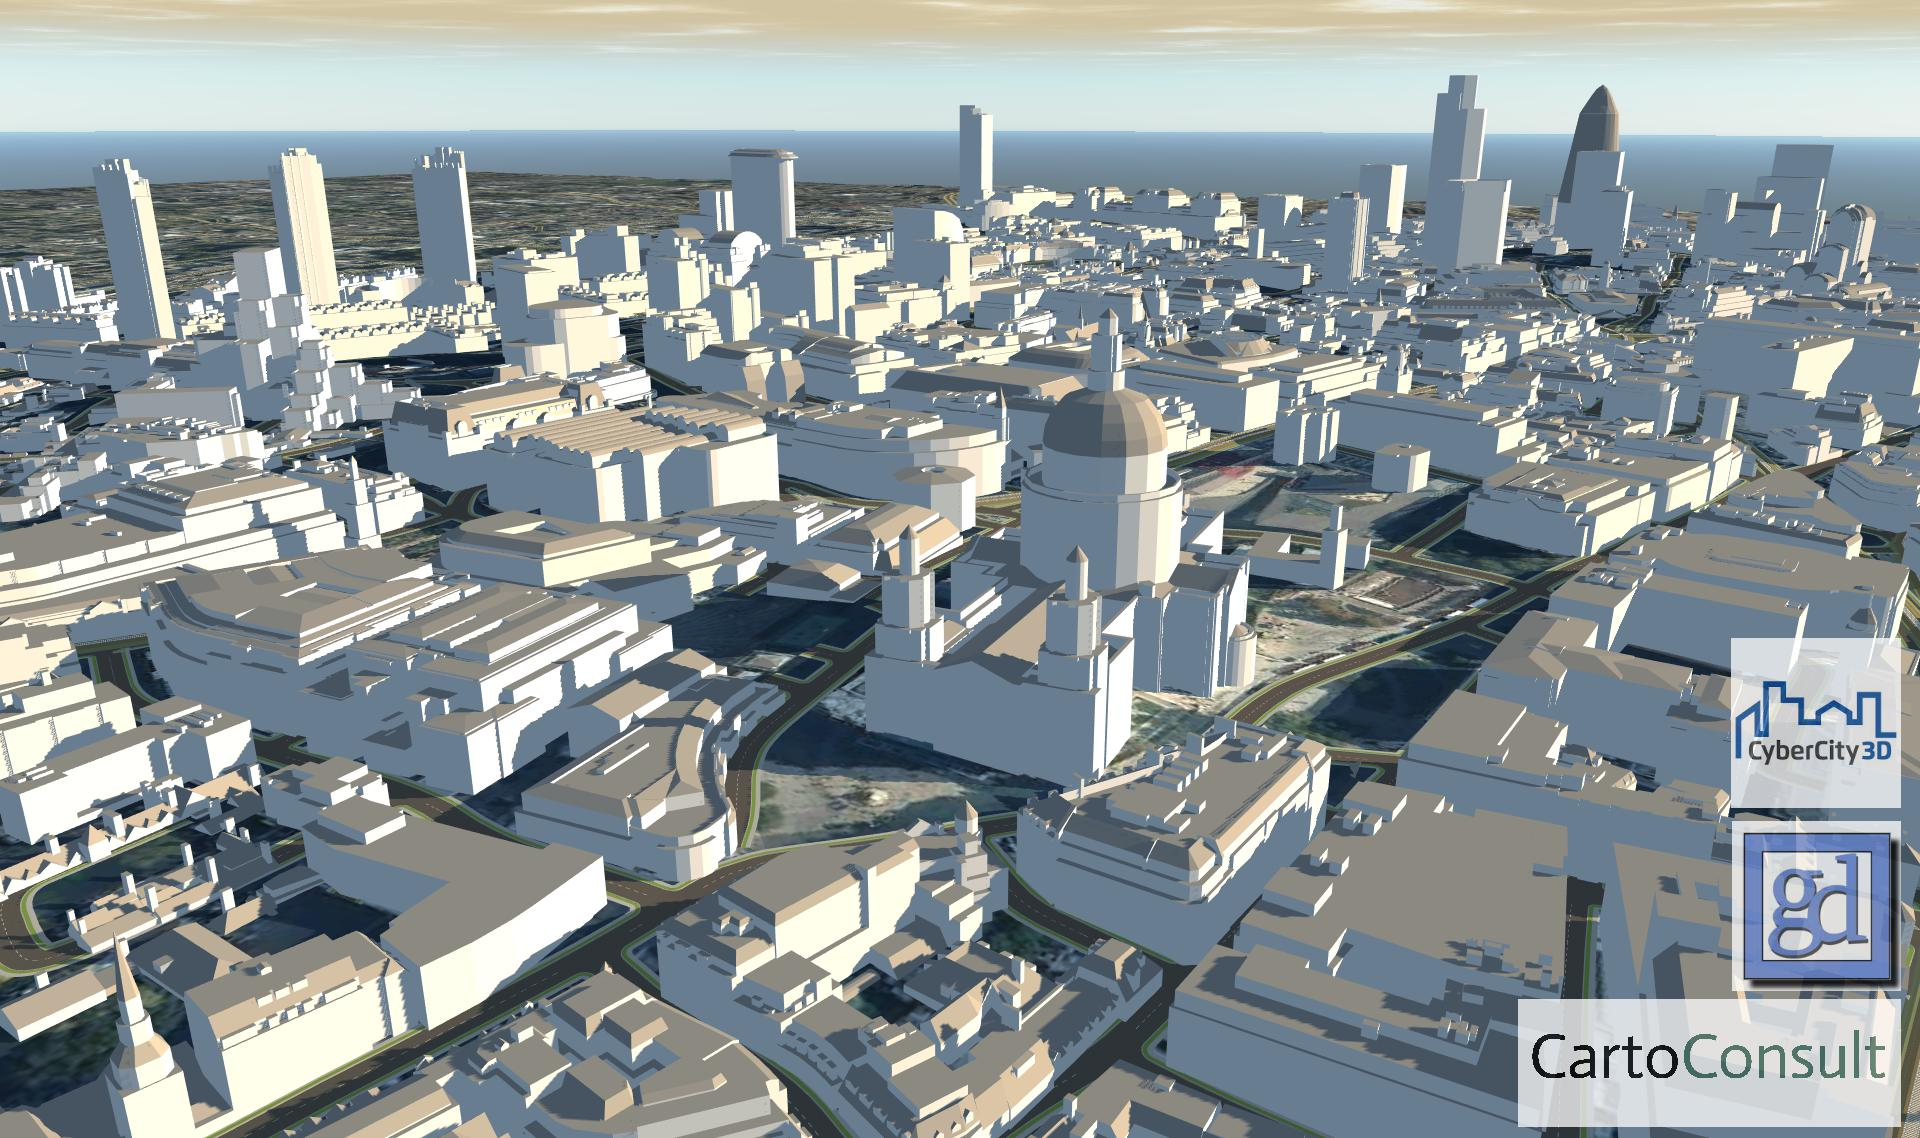 Cartoconsult-3d-city-modelling-2-3500-3500